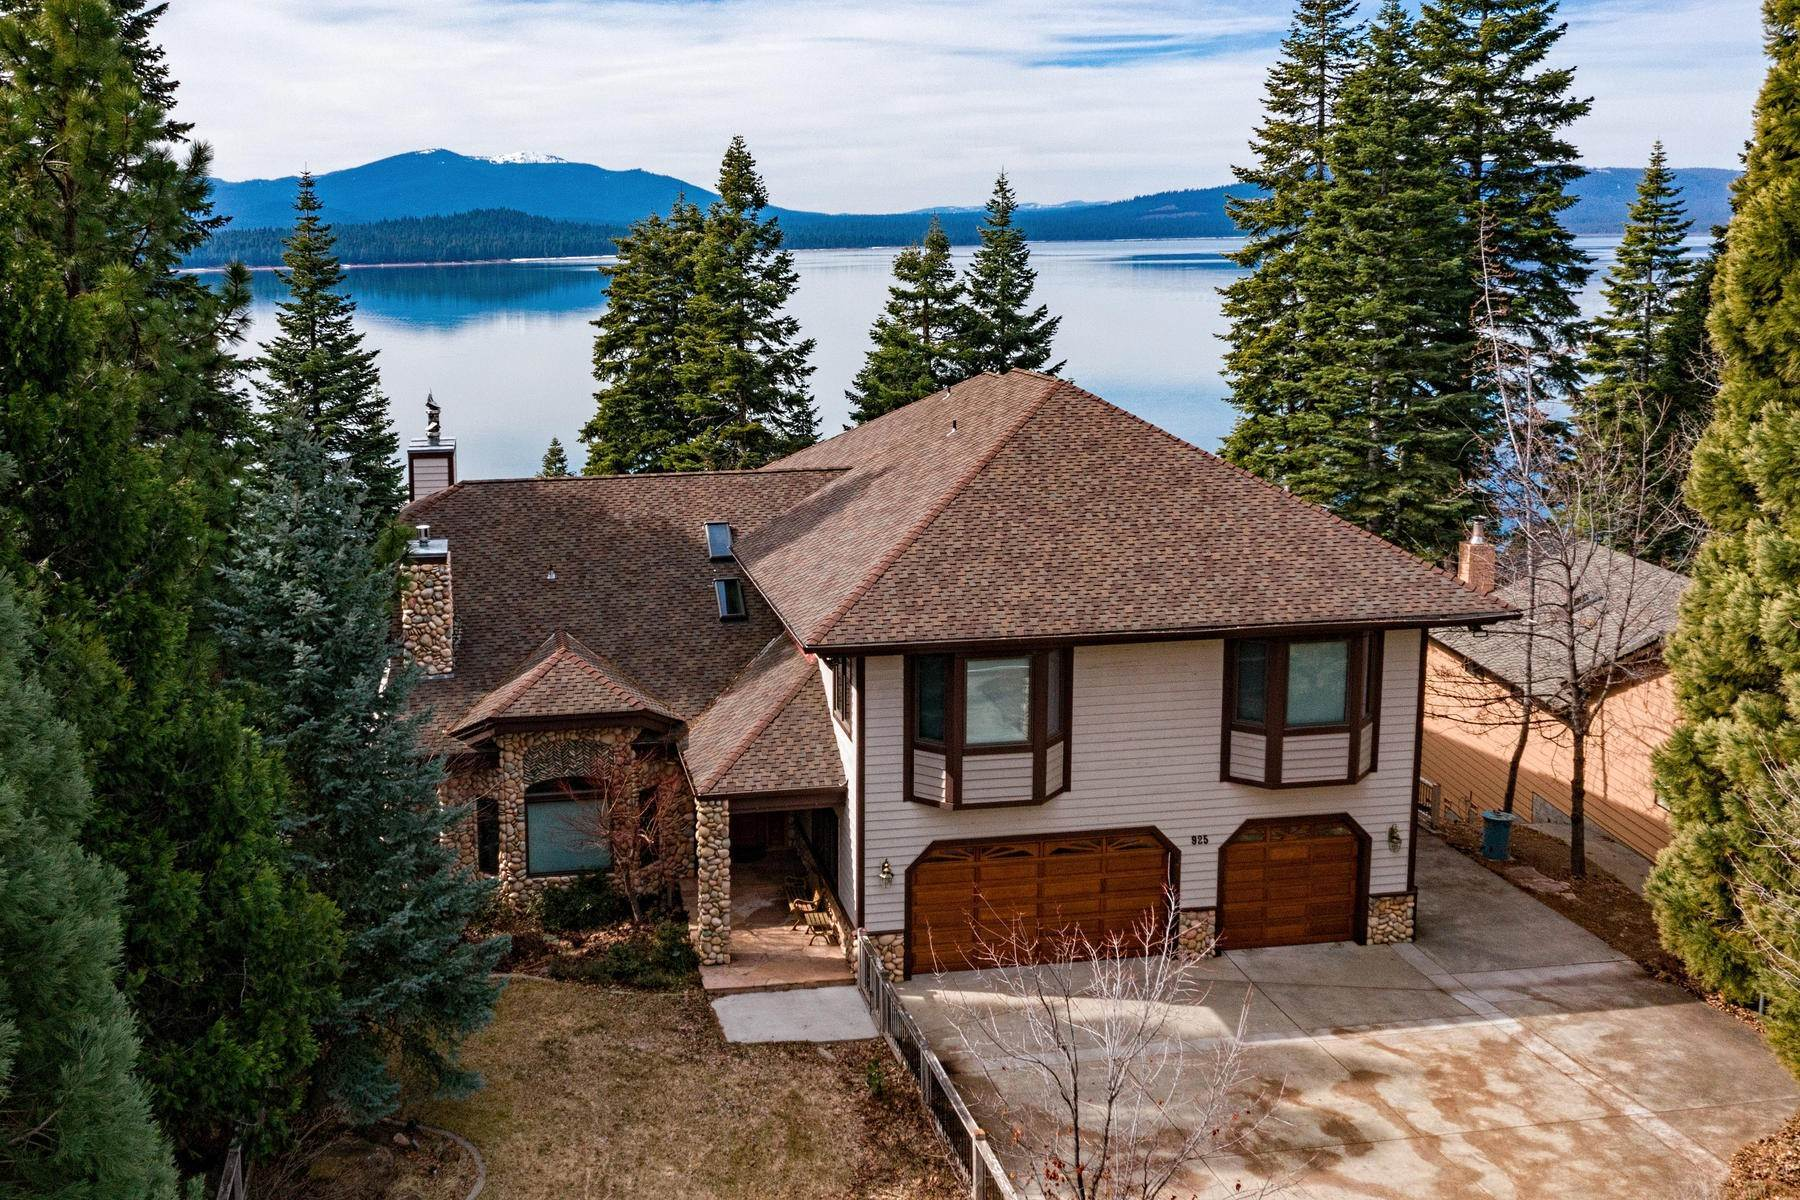 Property for Active at Beautiful Lakefront Home 925 Lassen View Drive Lake Almanor, California 96137 United States